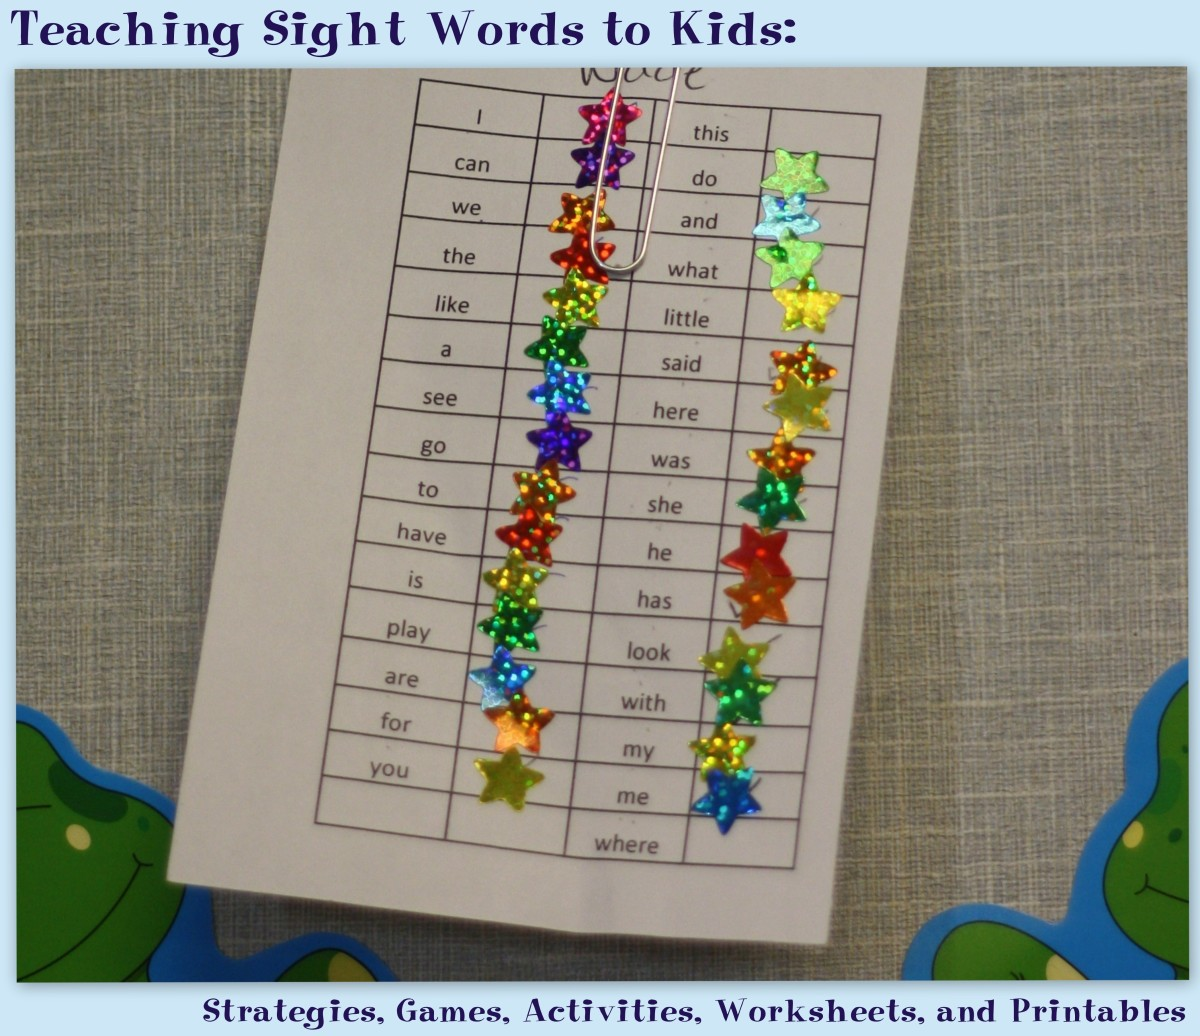 Teaching Sight Words To Kids Strategies Games Activities Worksheets And Printables